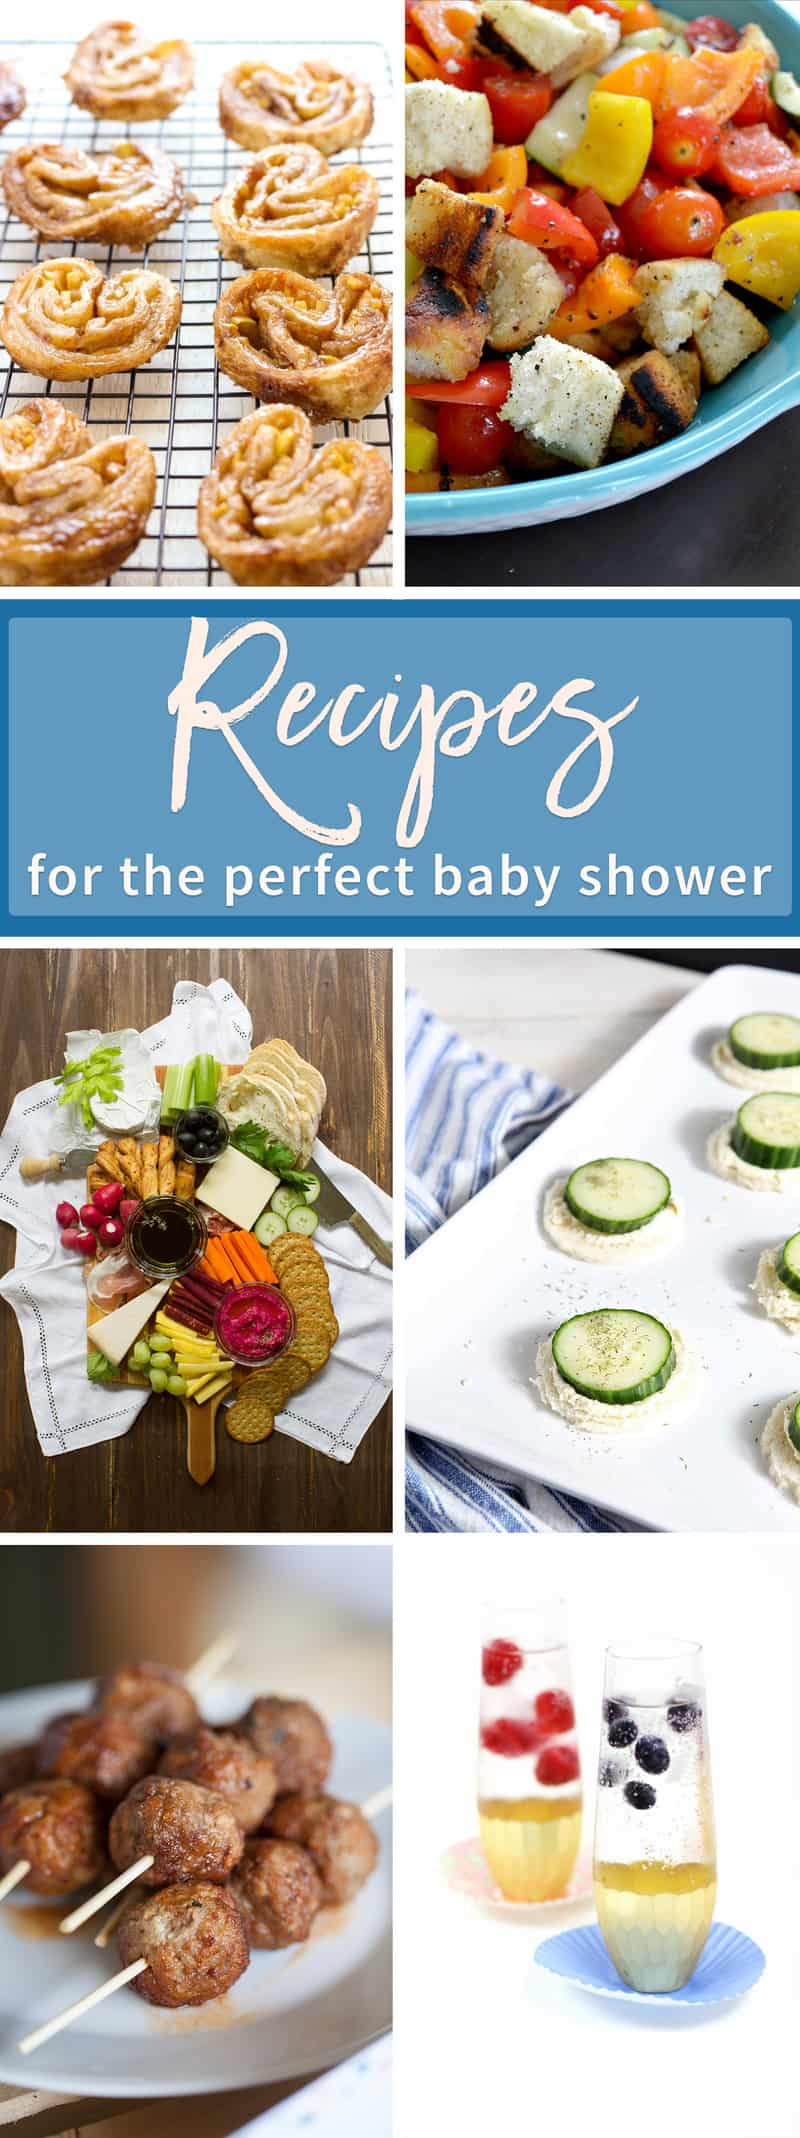 Recipes for the perfect baby shower!